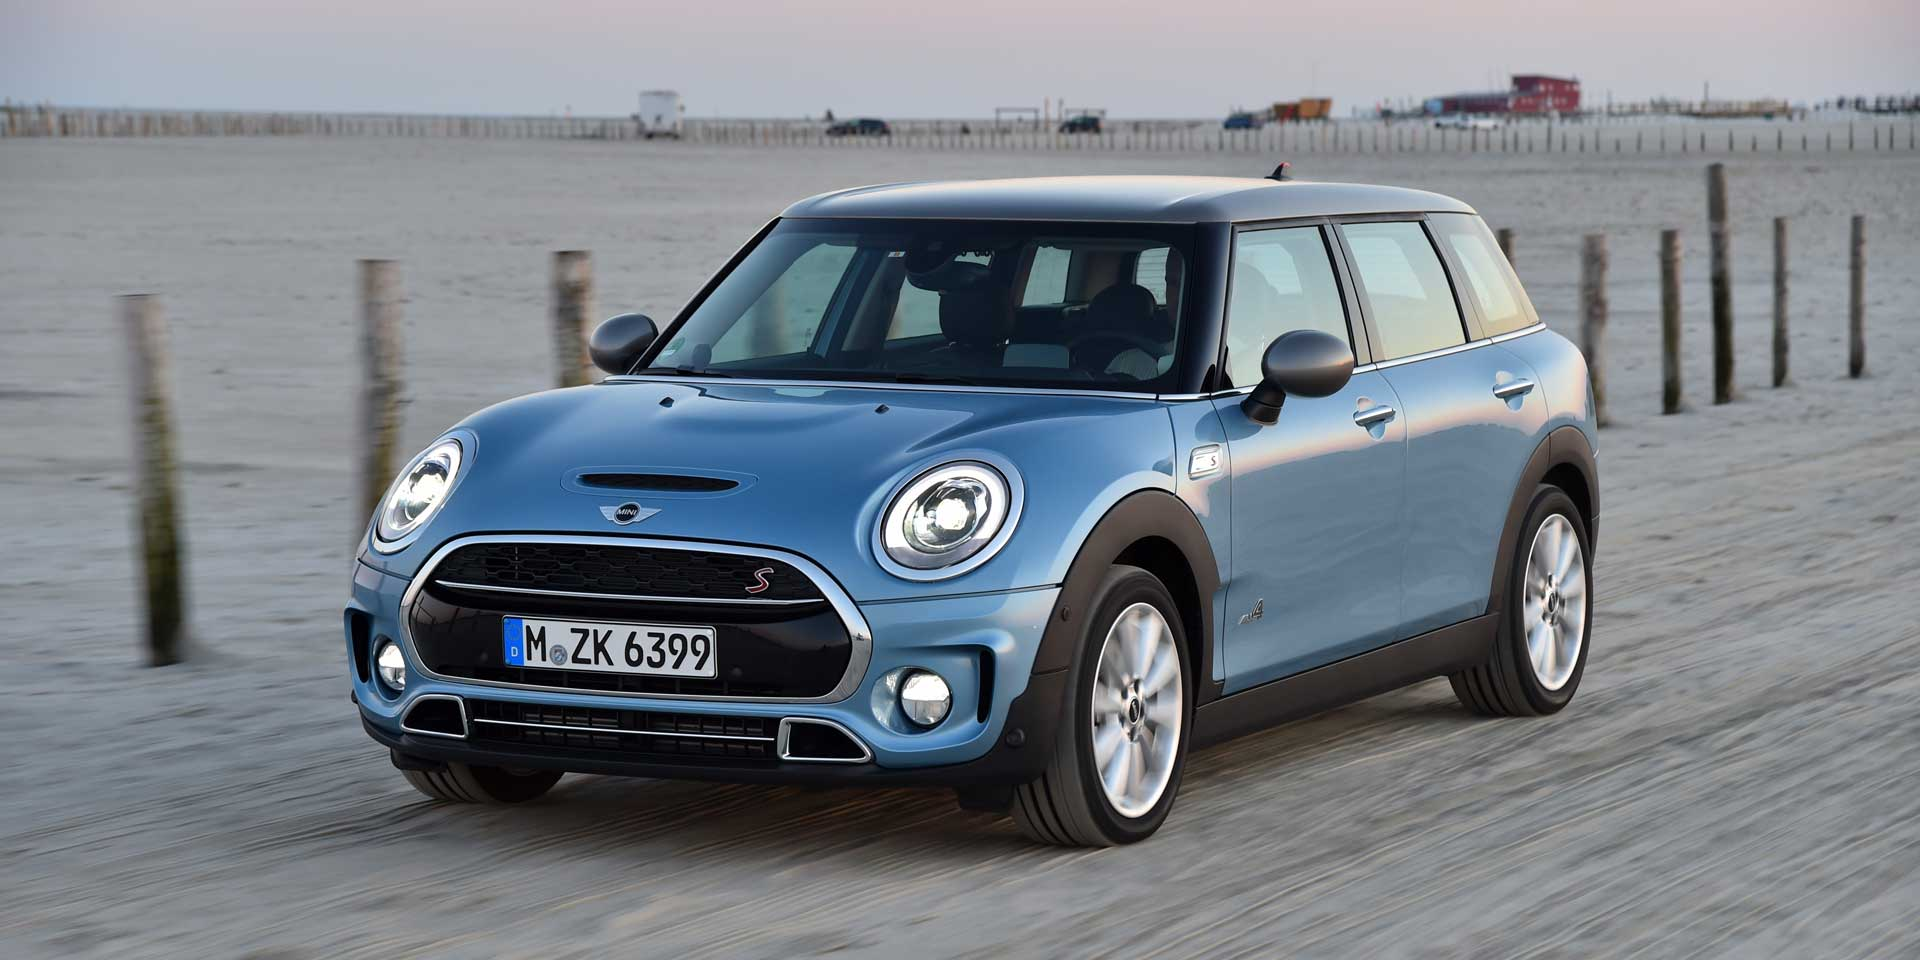 Featured Vehicle The 2017 Mini Clubman